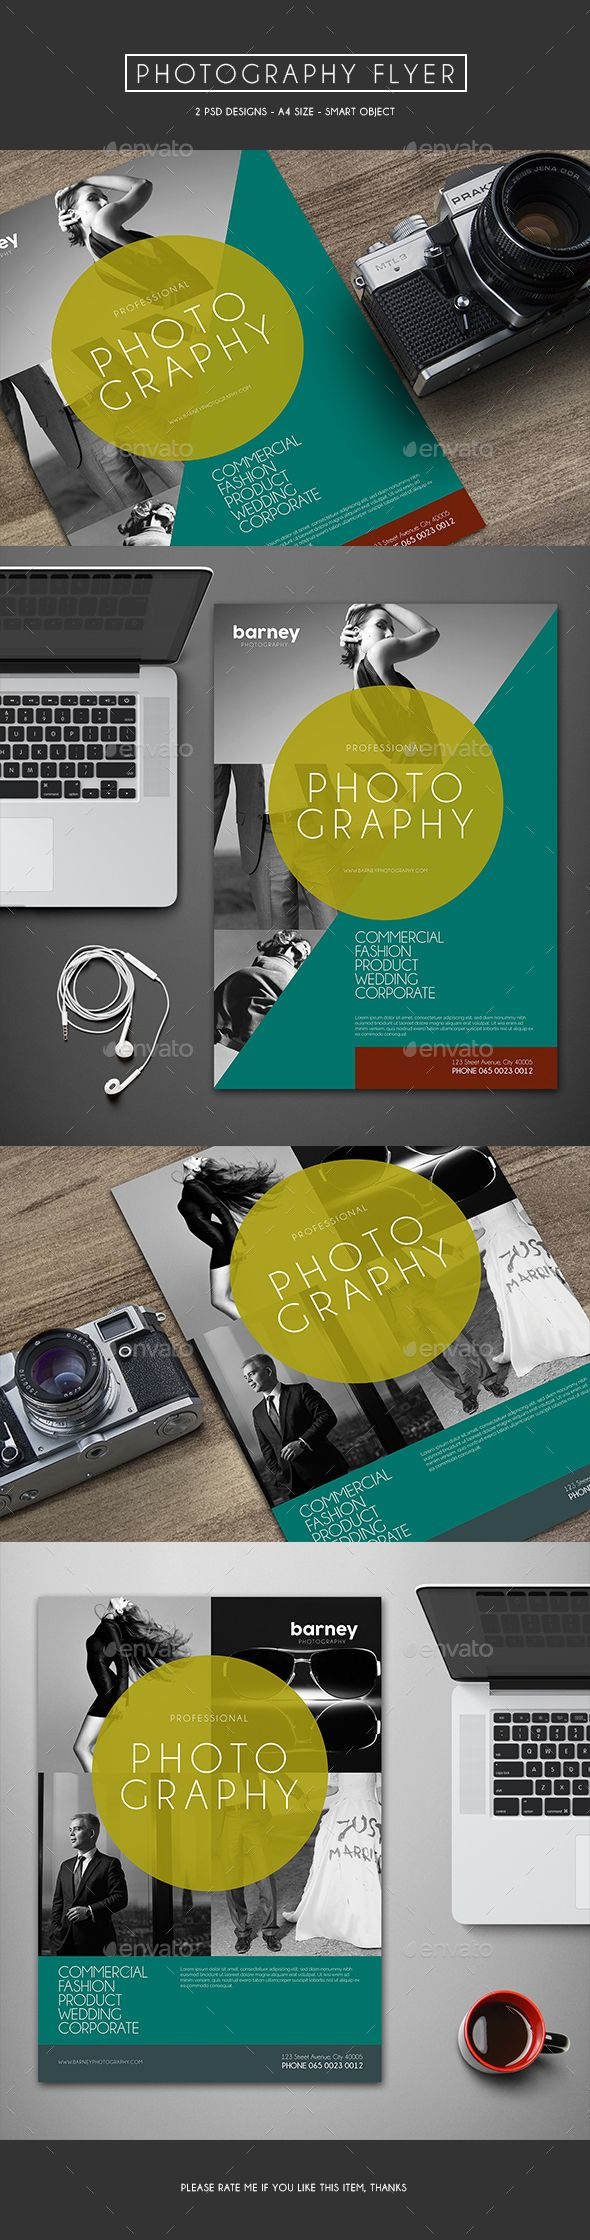 // Idee: VideoProduktion groß im Mittelpkt // Photography Flyer Template PSD #design Download: http://graphicriver.net/item/photography-flyer/13462152?ref=ksioks